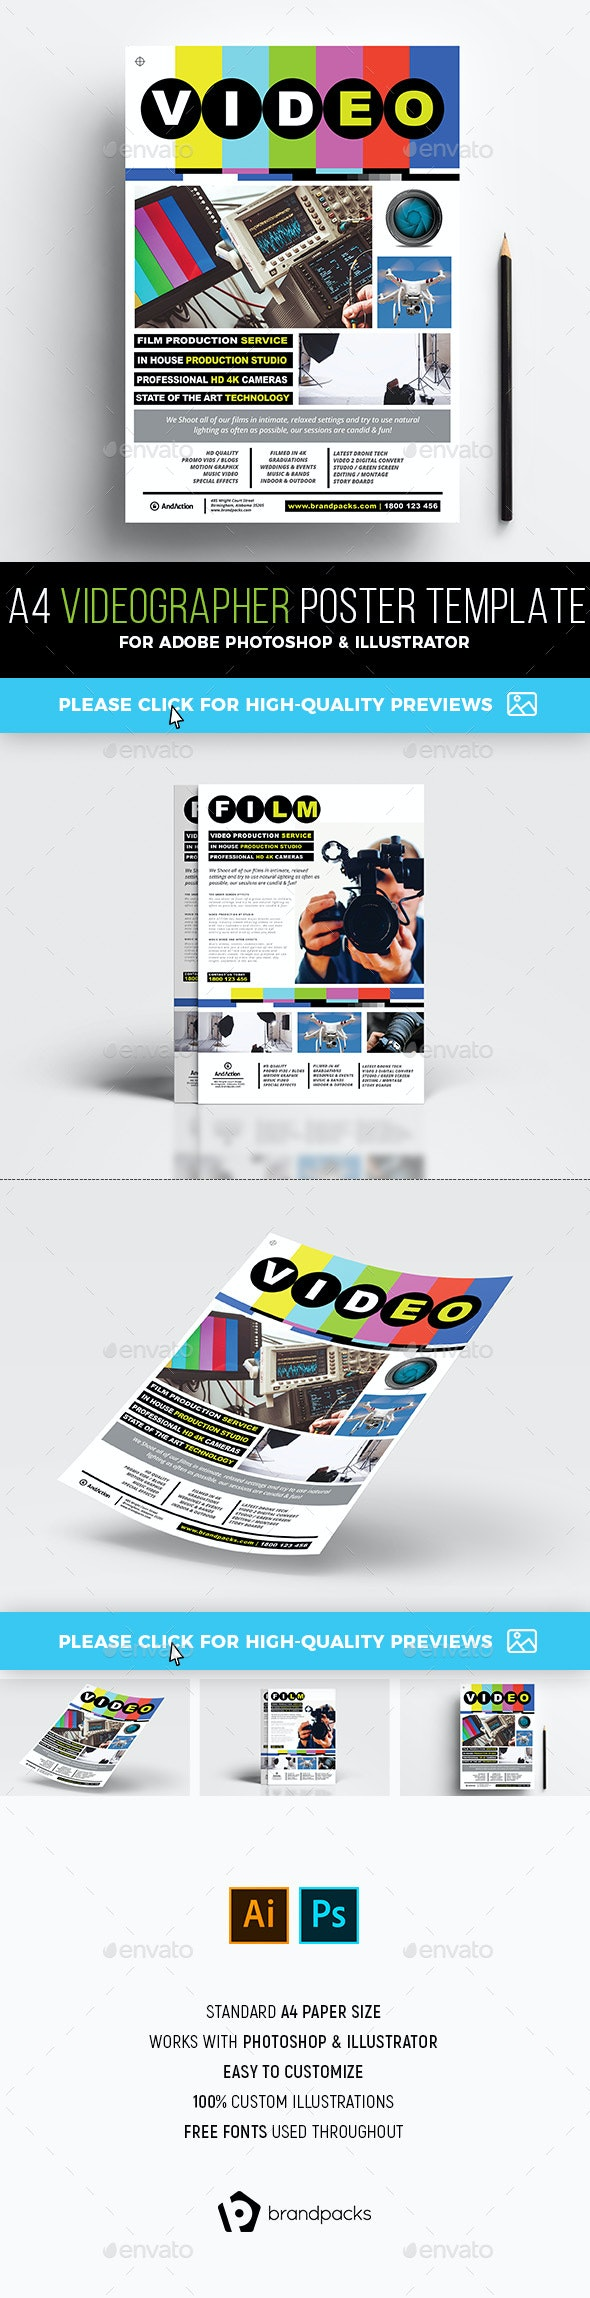 A4 Videographer Advertisement / Poster Template - Corporate Flyers